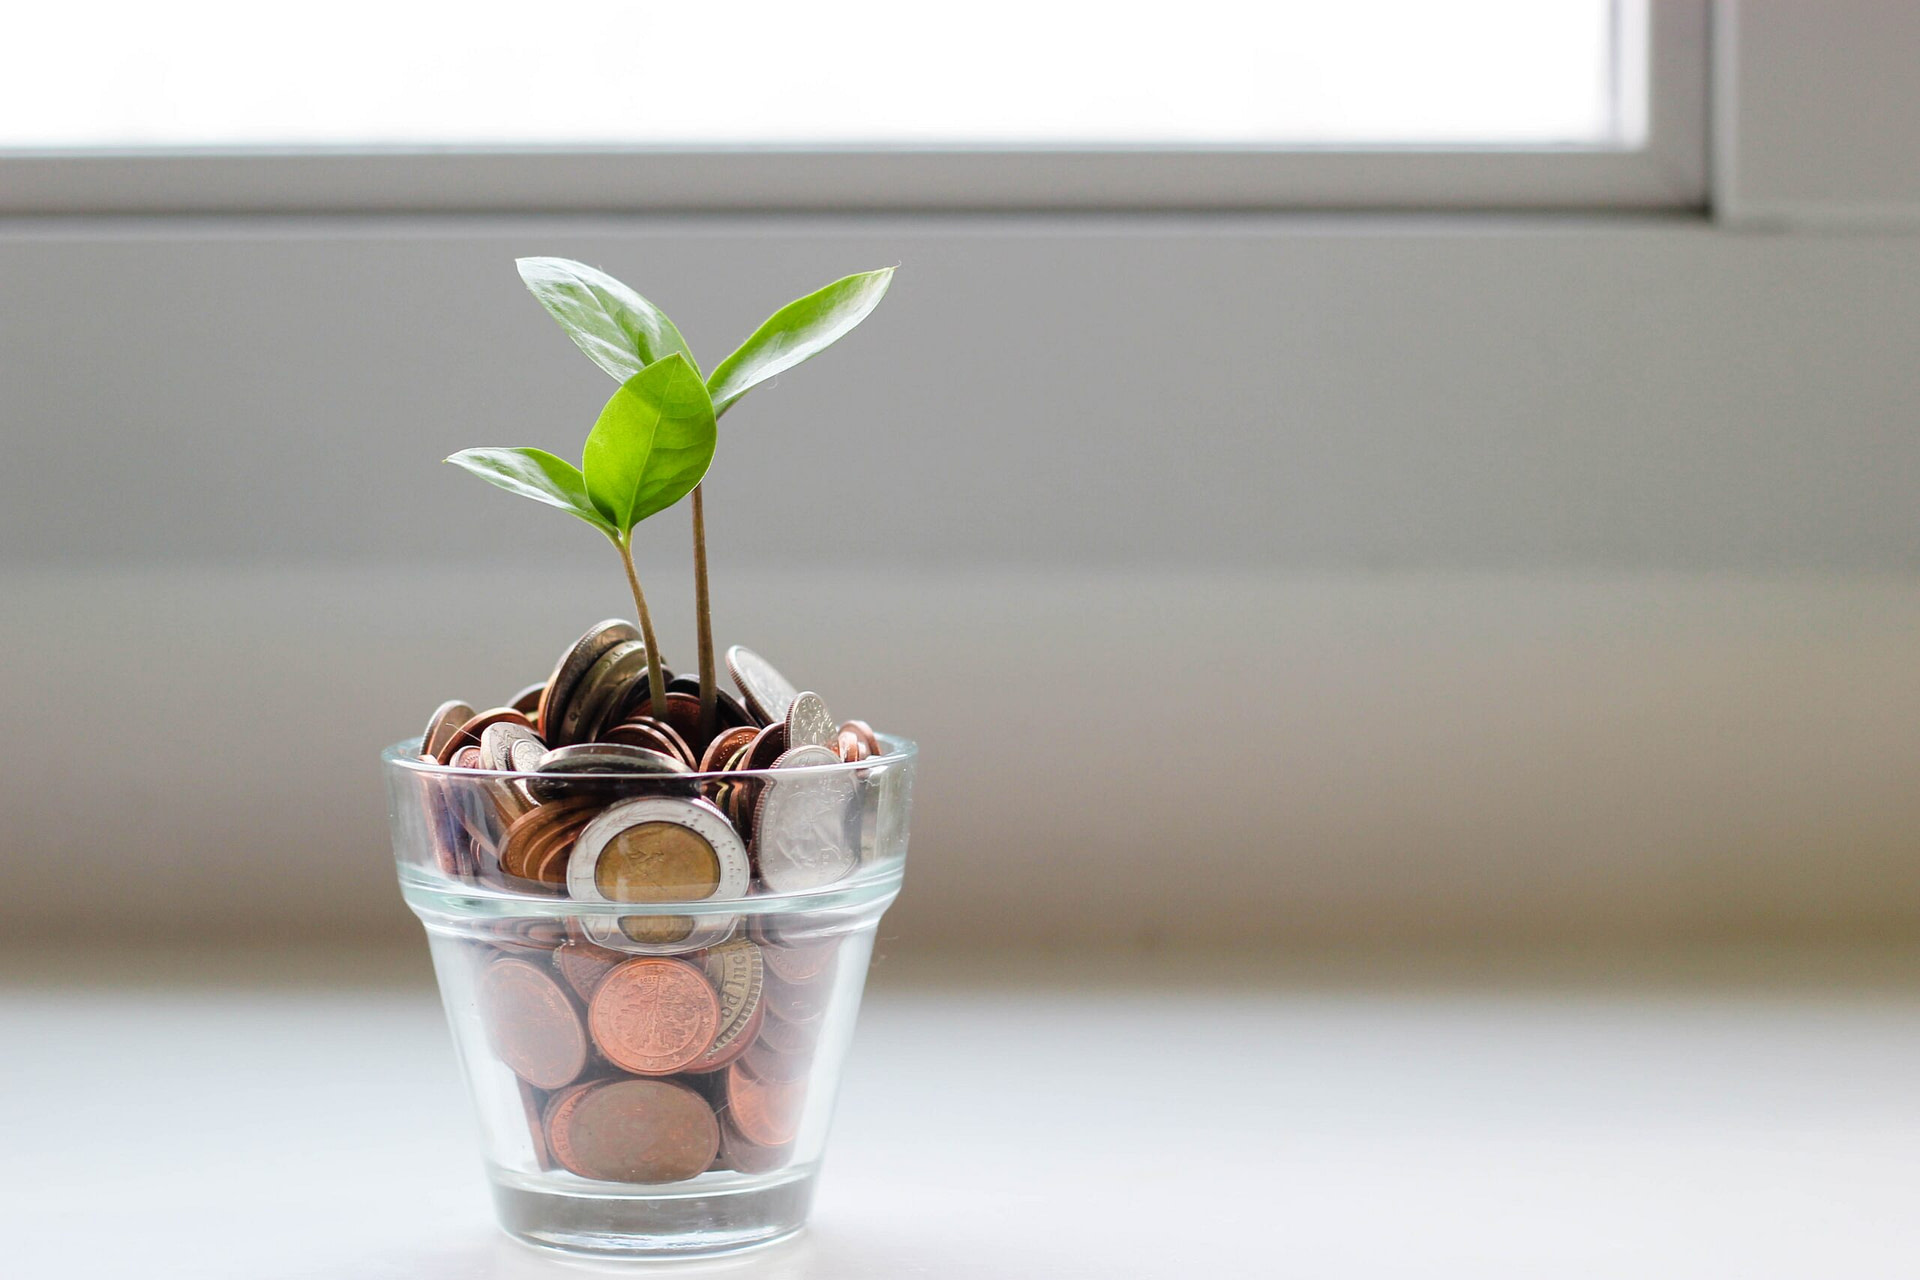 green plant growing from glass pot of coins